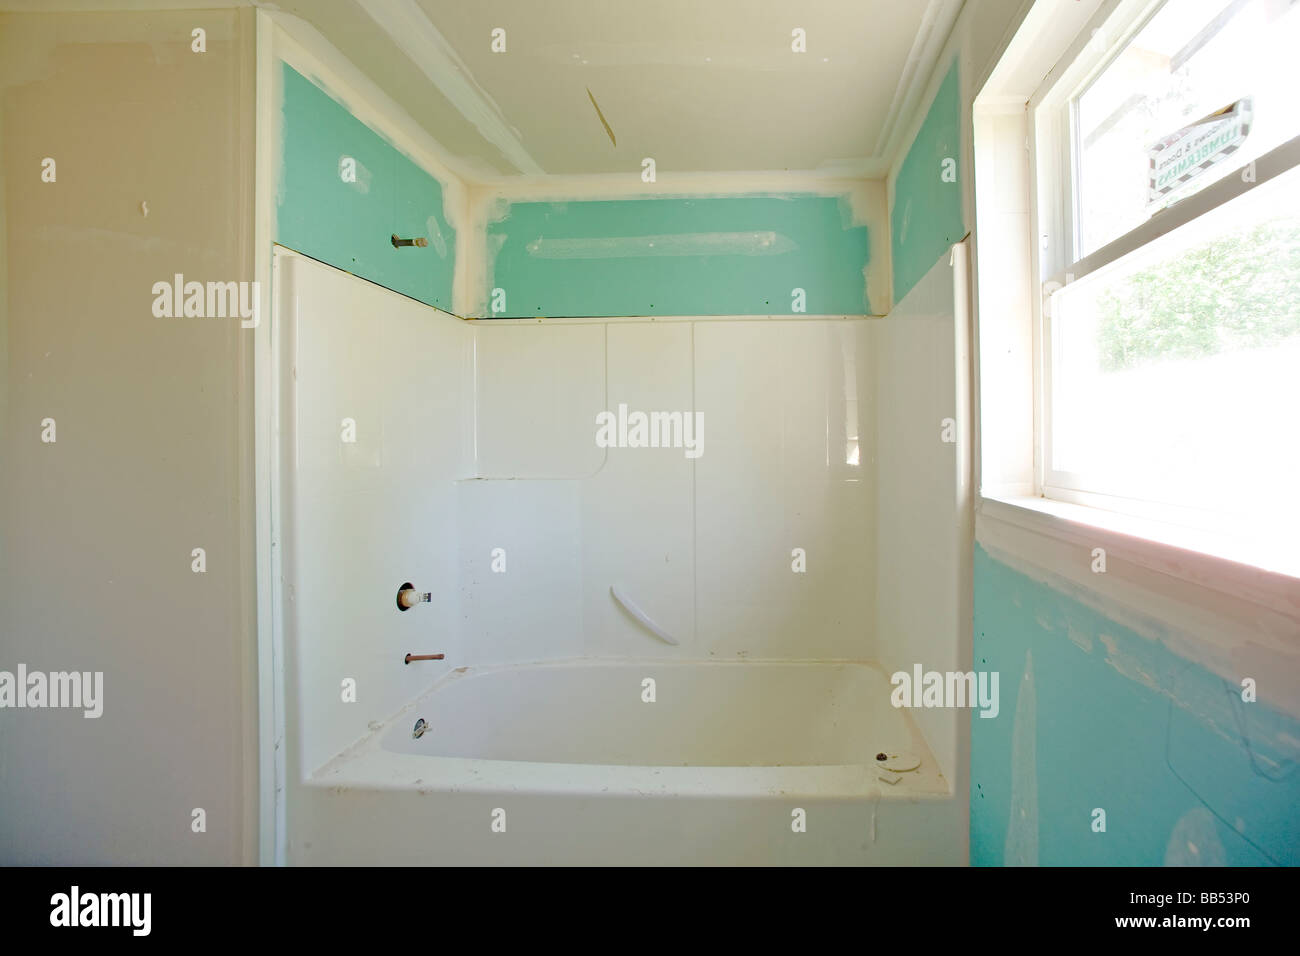 Drywall Is Used In New Residential Construction In Bathroom.   Stock Image